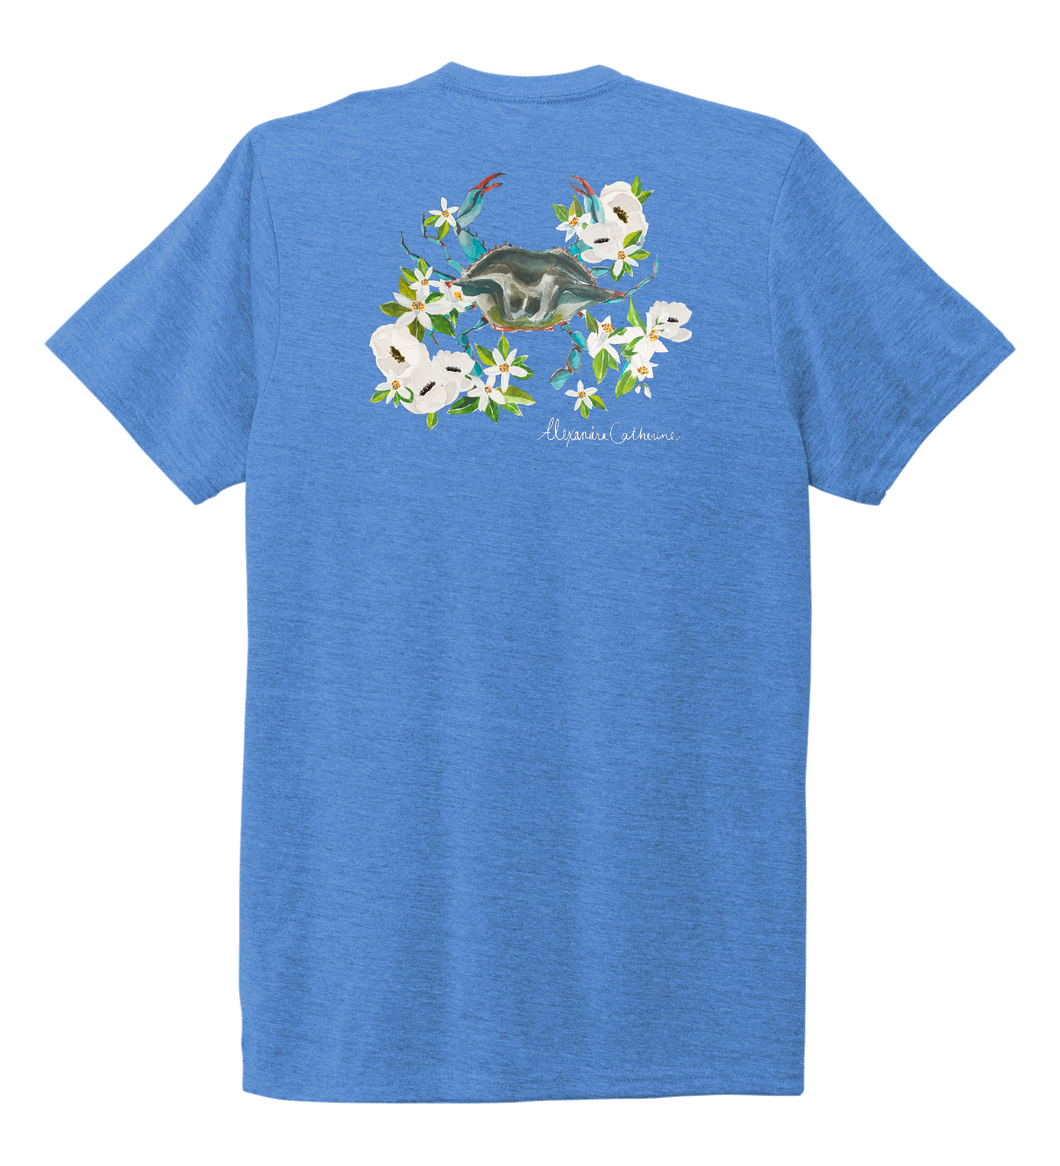 Alexandra Catherine, Blue Crab, Unisex Crew Neck T-shirt in Sky Blue